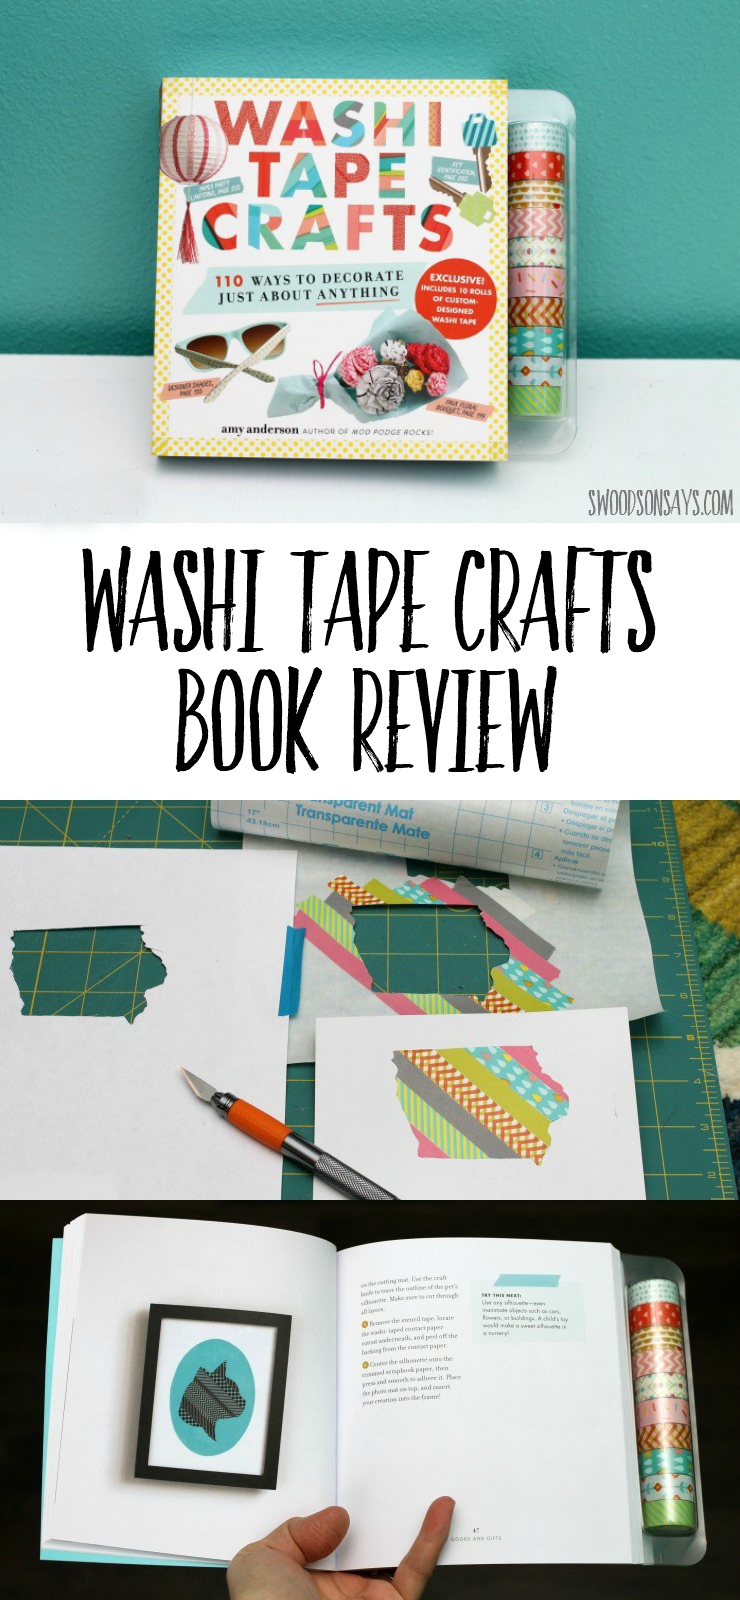 Check out this craft book all about washi tape crafts! Lots of ideas and beginner friendly washi tape projects. #washitape